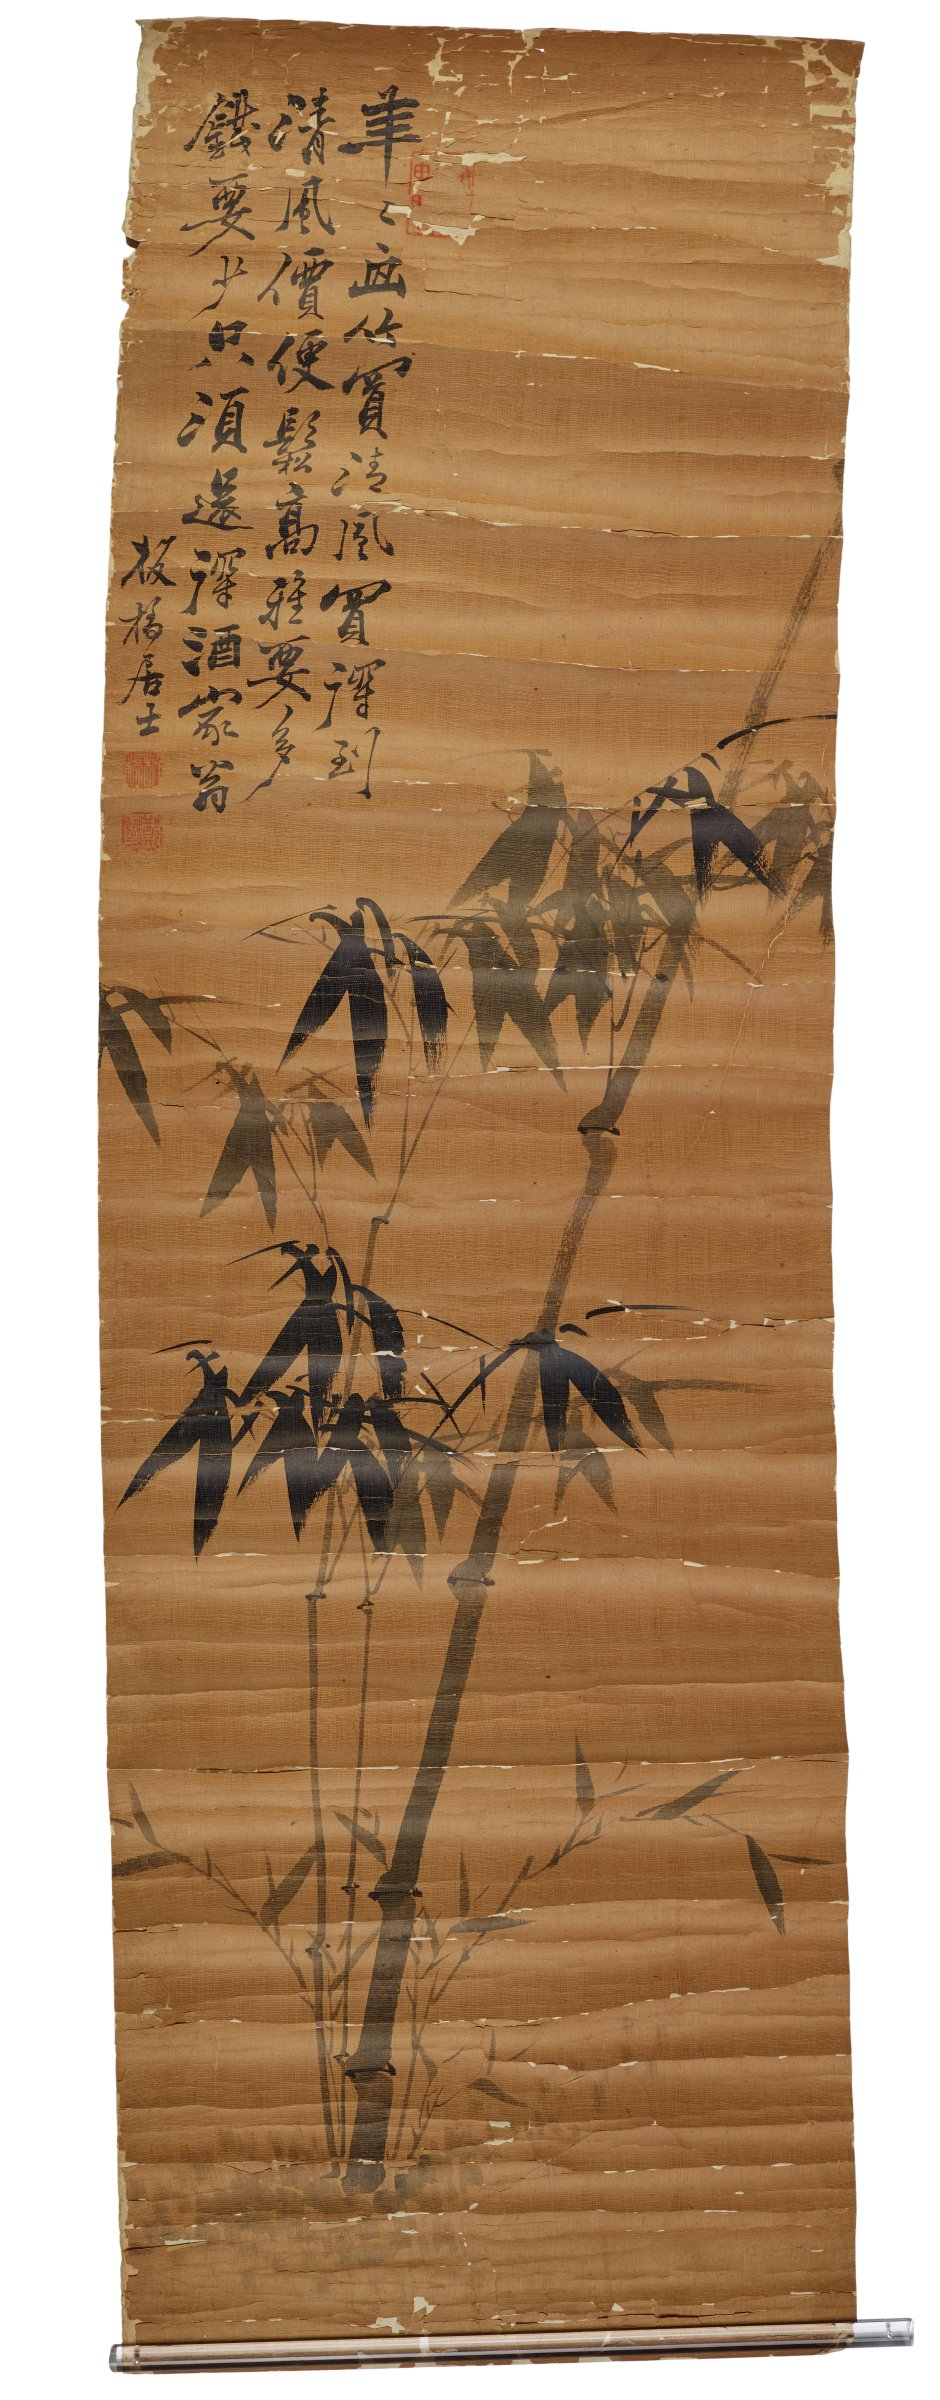 Unmounted Ink Painting of Bamboo with Calligraphy and Seals. Poor condition mounted on paper